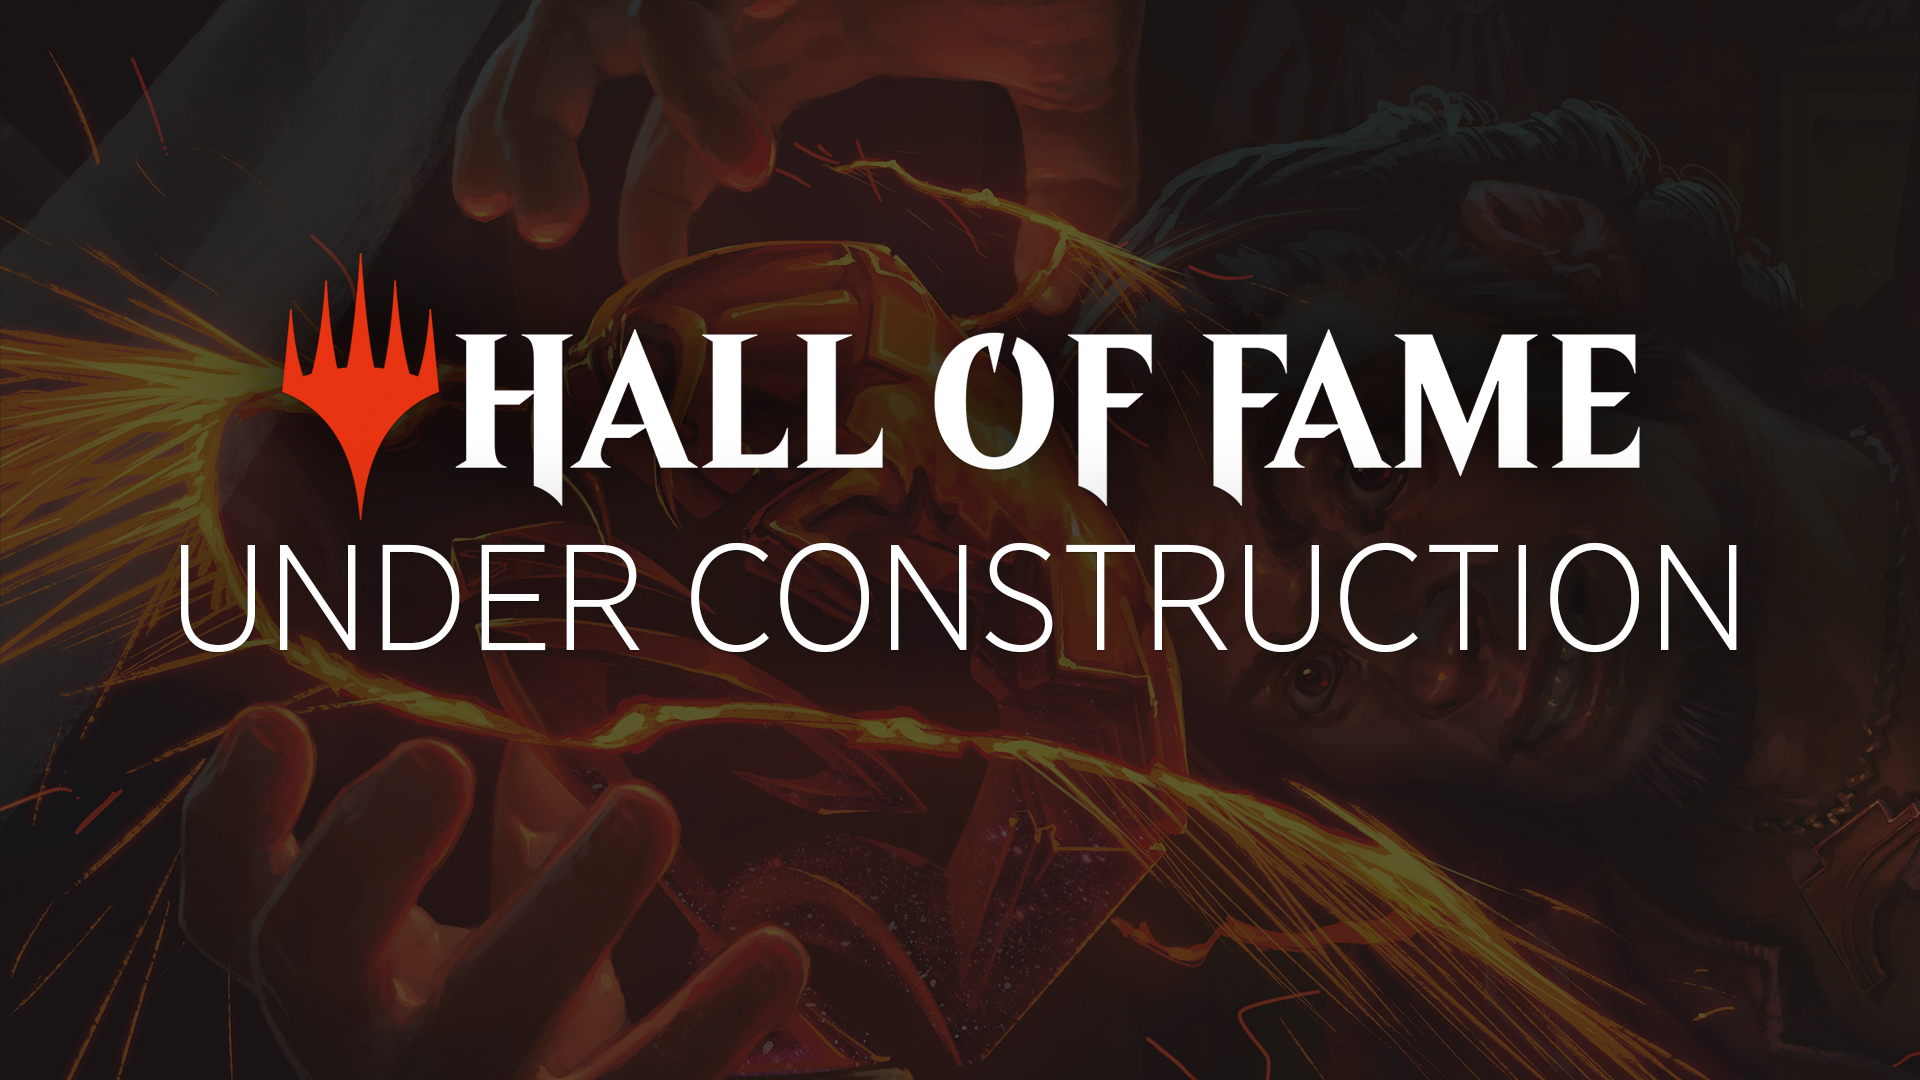 Hall of Fame Under Construction Graphic